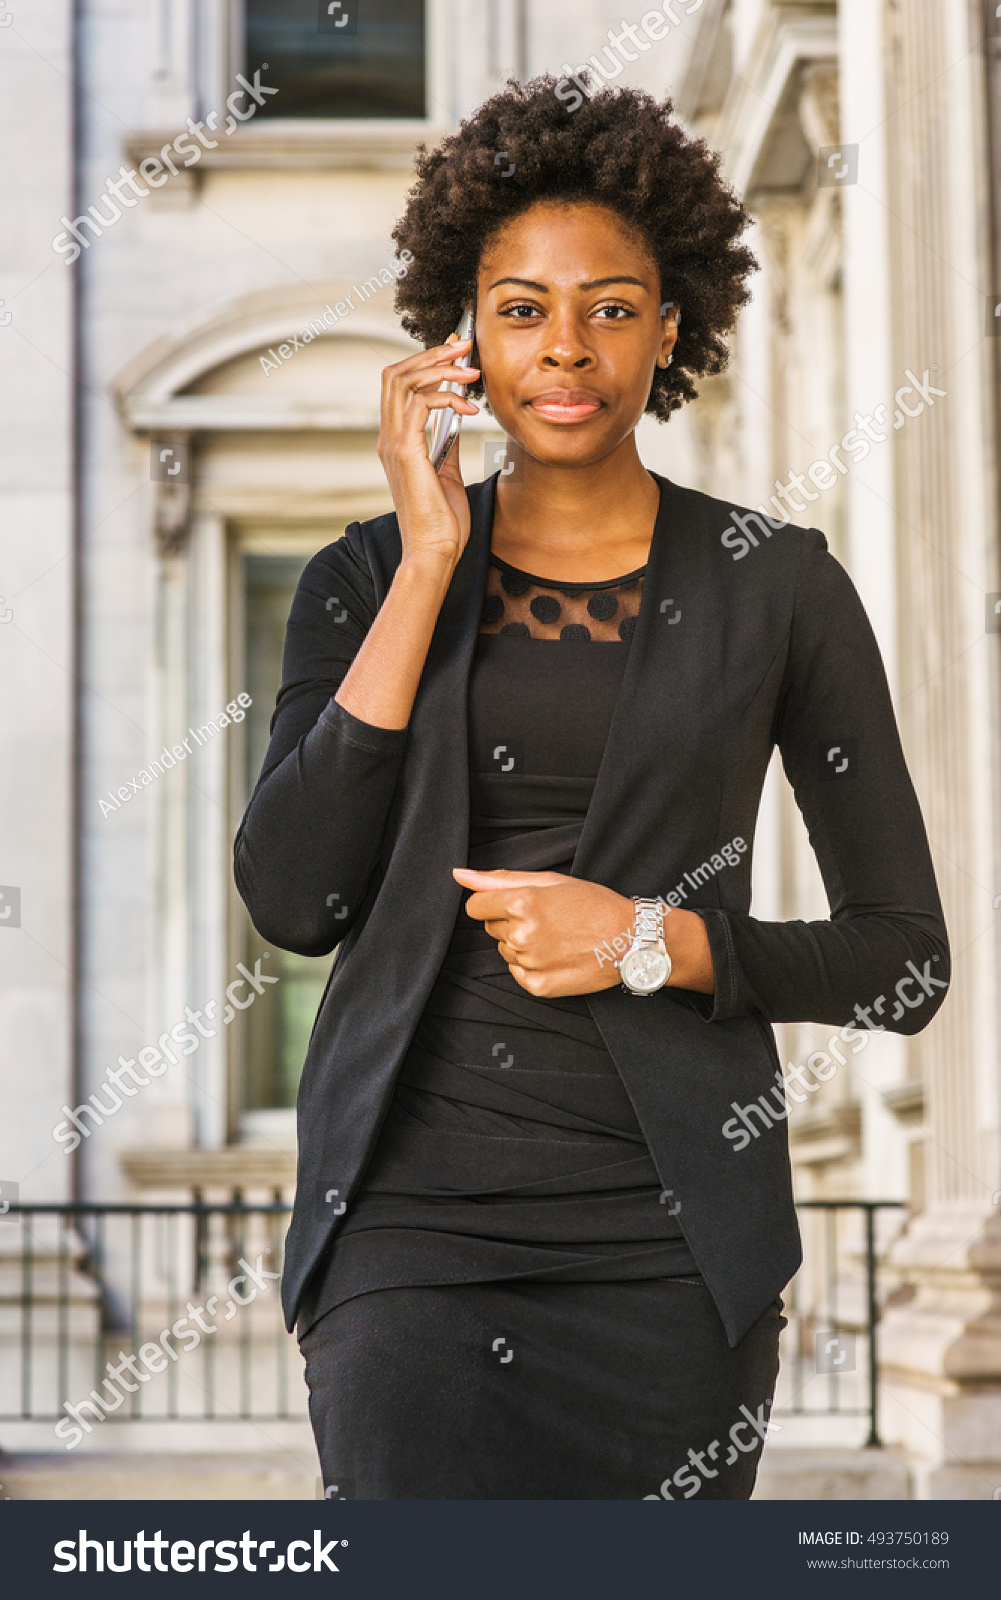 African American Businesswoman Short Afro Hairstyle Stock Photo